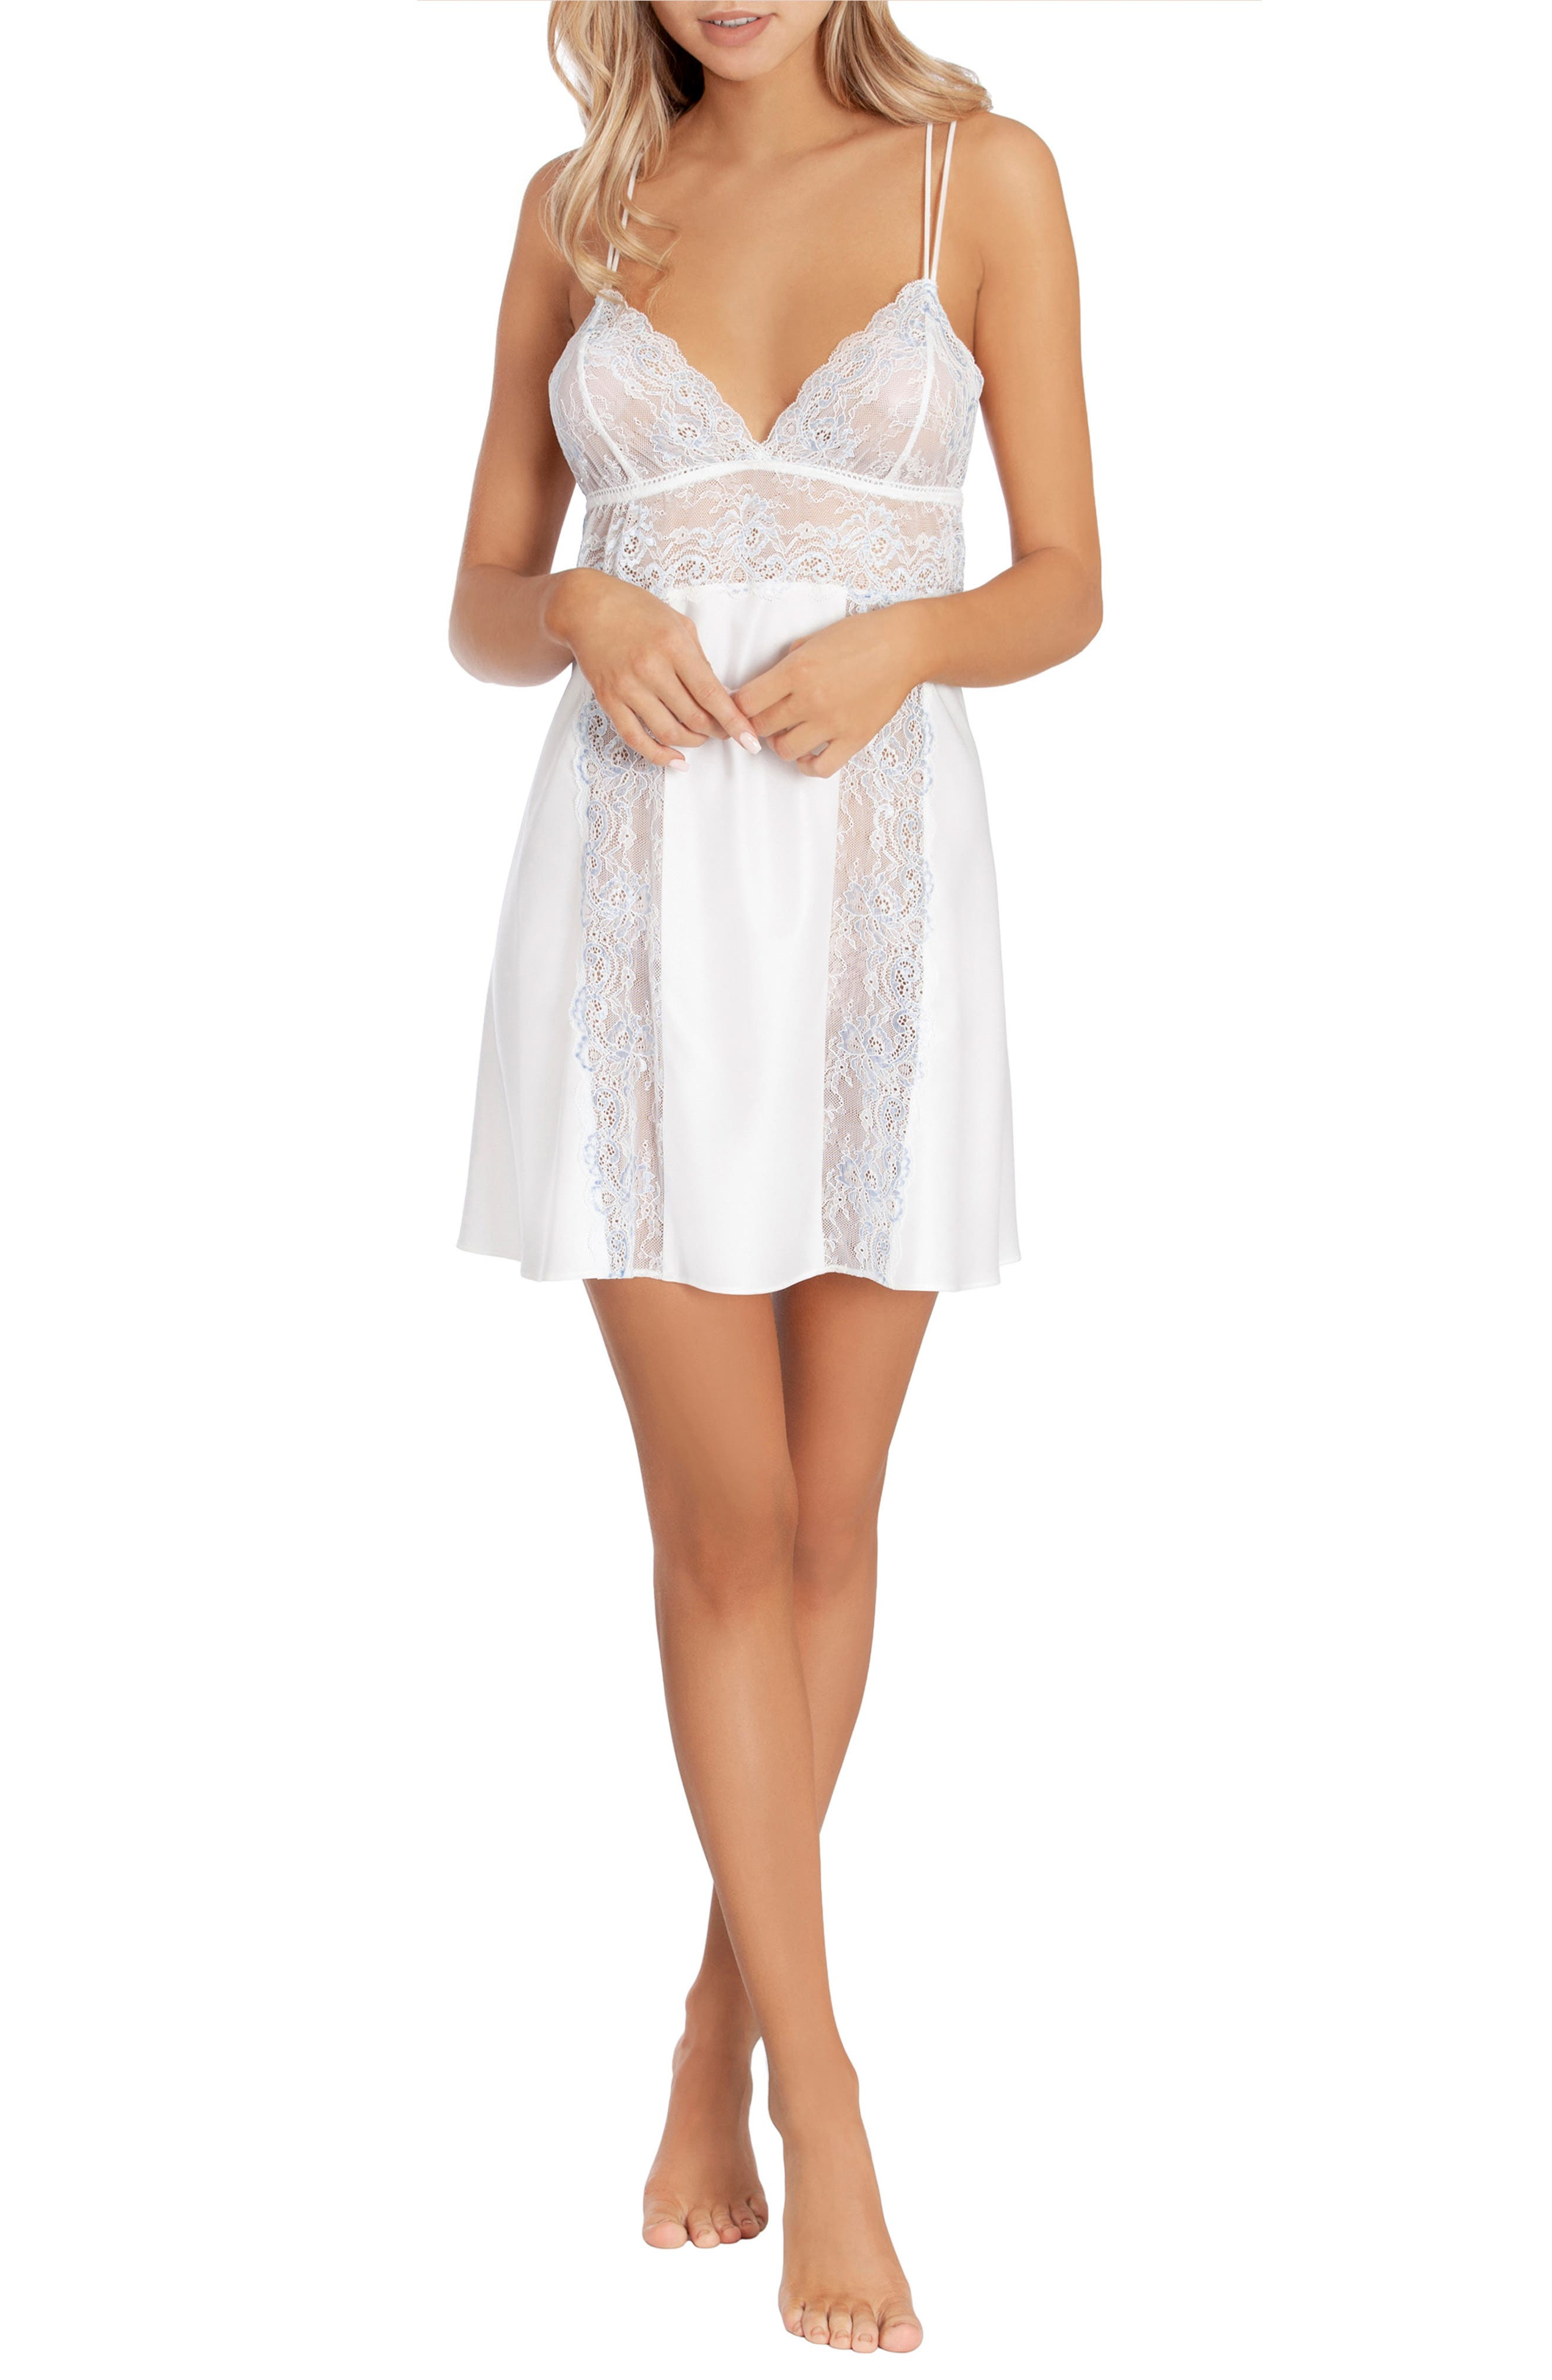 IN BLOOM BY JONQUIL,                             Lace & Satin Chemise,                             Alternate thumbnail 5, color,                             OFF-WHITE